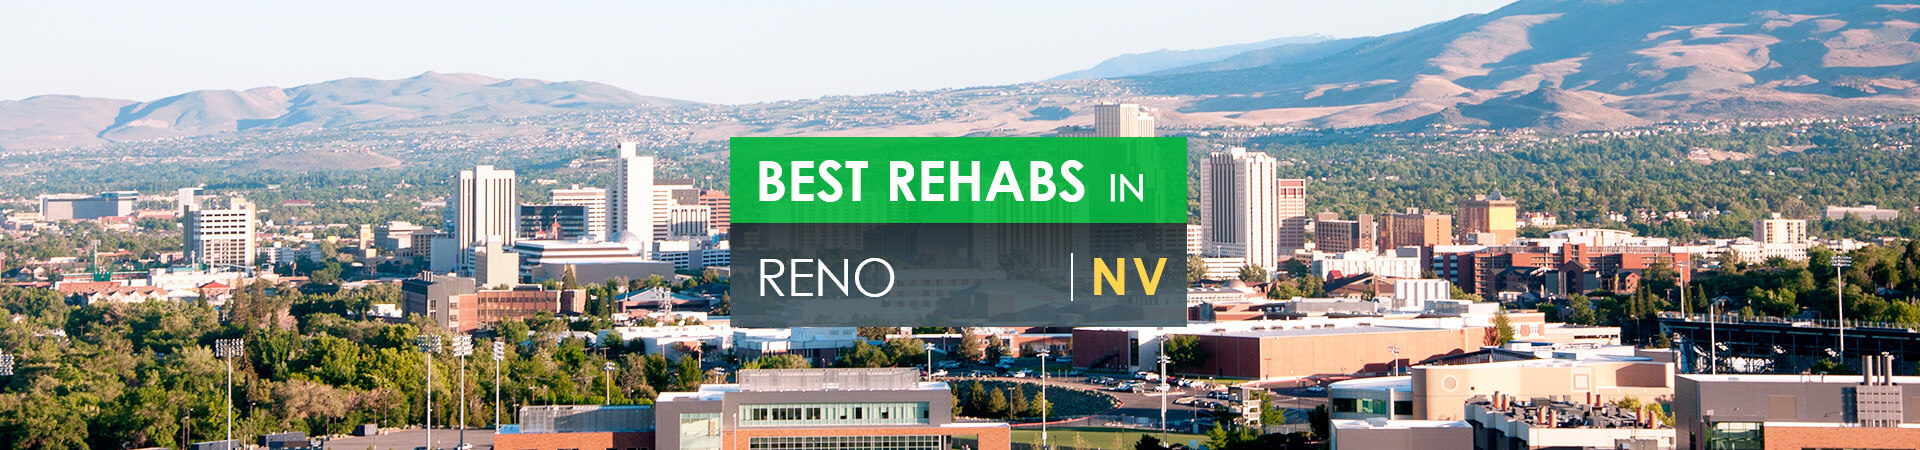 Best rehabs in Reno, NV